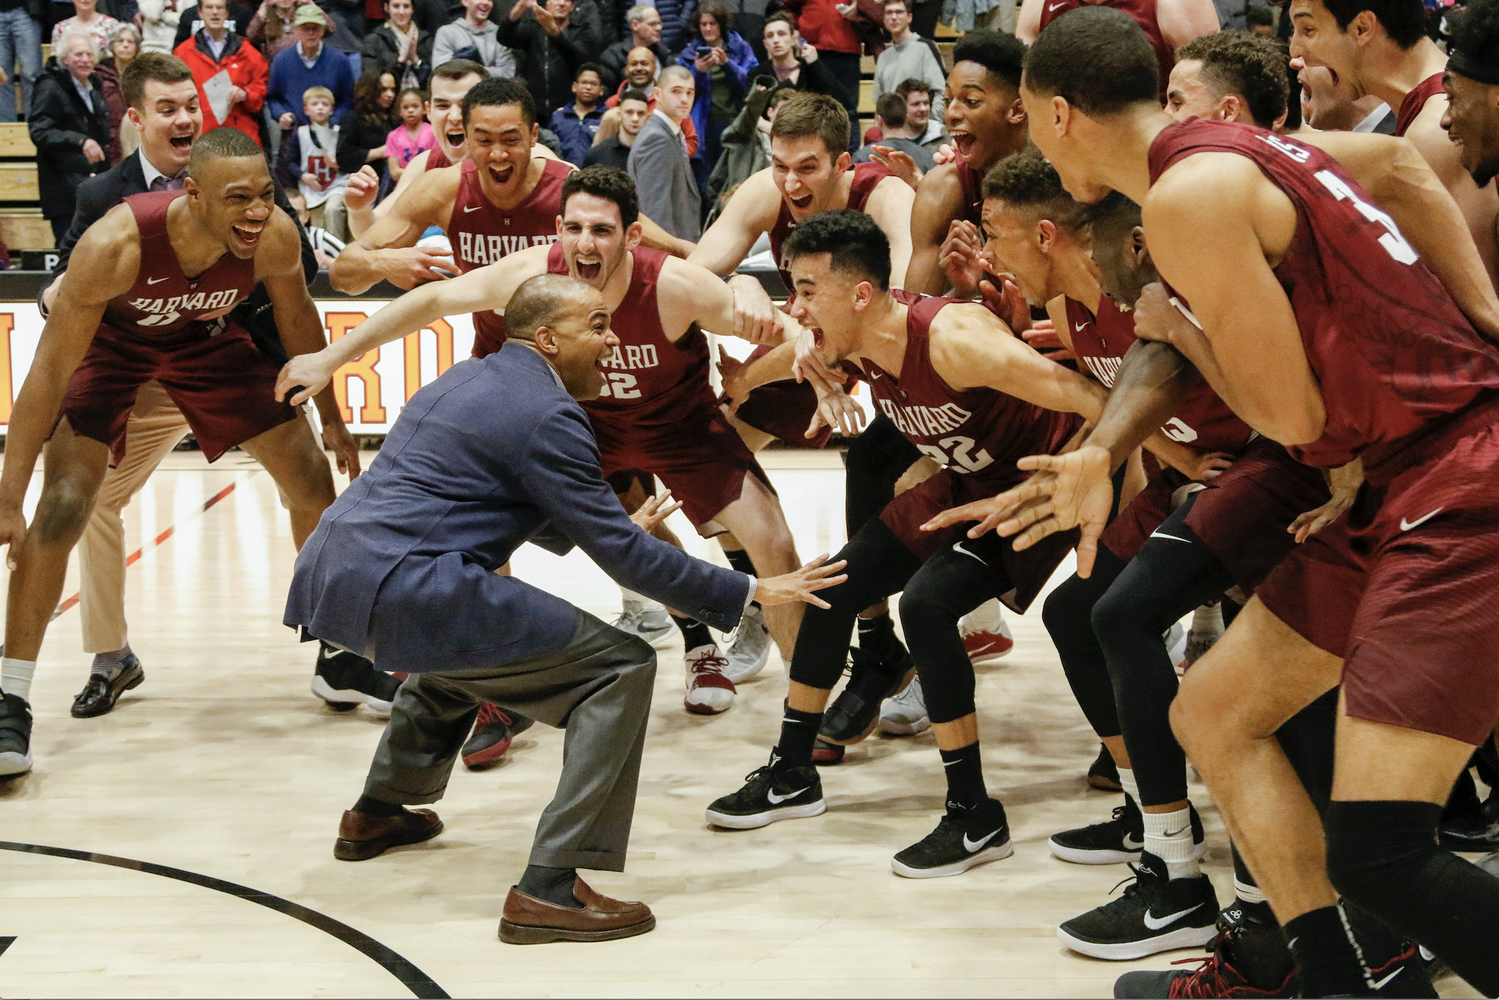 Harvard Men's Basketball coach Tommy Amaker celebrates Harvard's regular season Ivy League title with his team following a 93-74 vicory against Columbia. The team will take on 4-seed Cornell in the first round of the Ivy Madness tournament next Saturday.